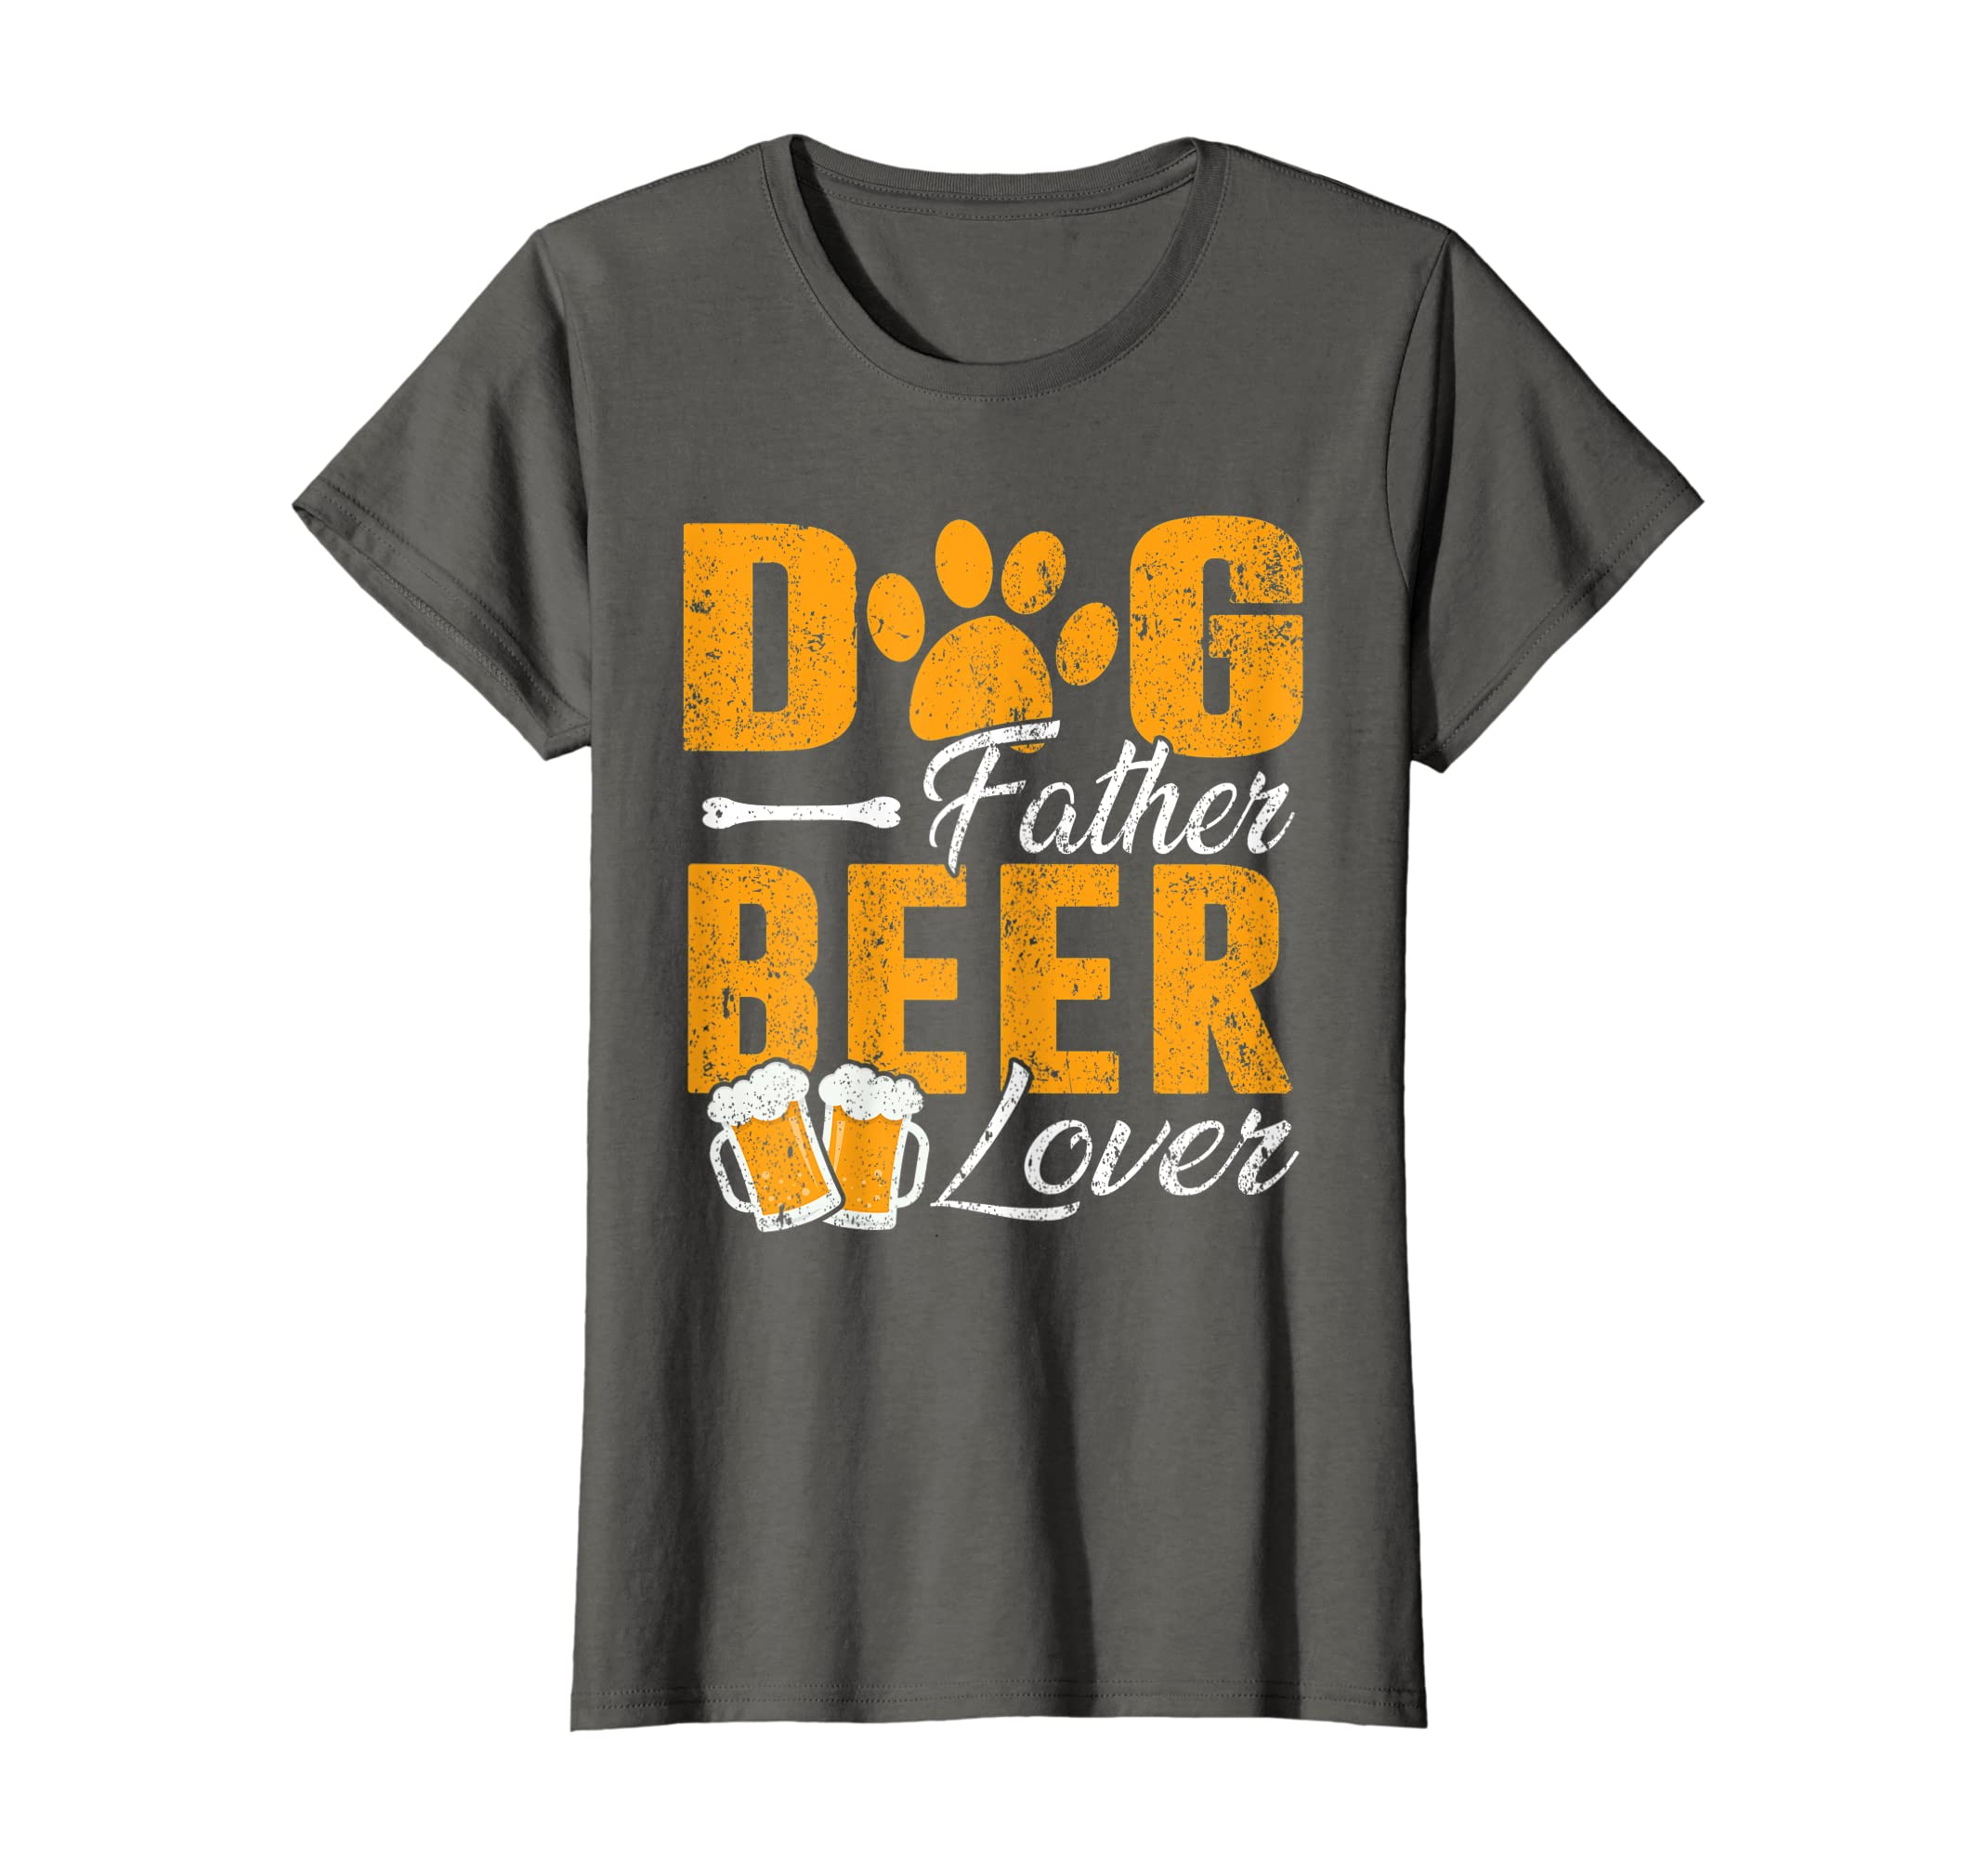 4264676a8e Amazon.com: Dog Father Beer Lover Shirt Funny Fathers Day Gift For Daddy:  Clothing